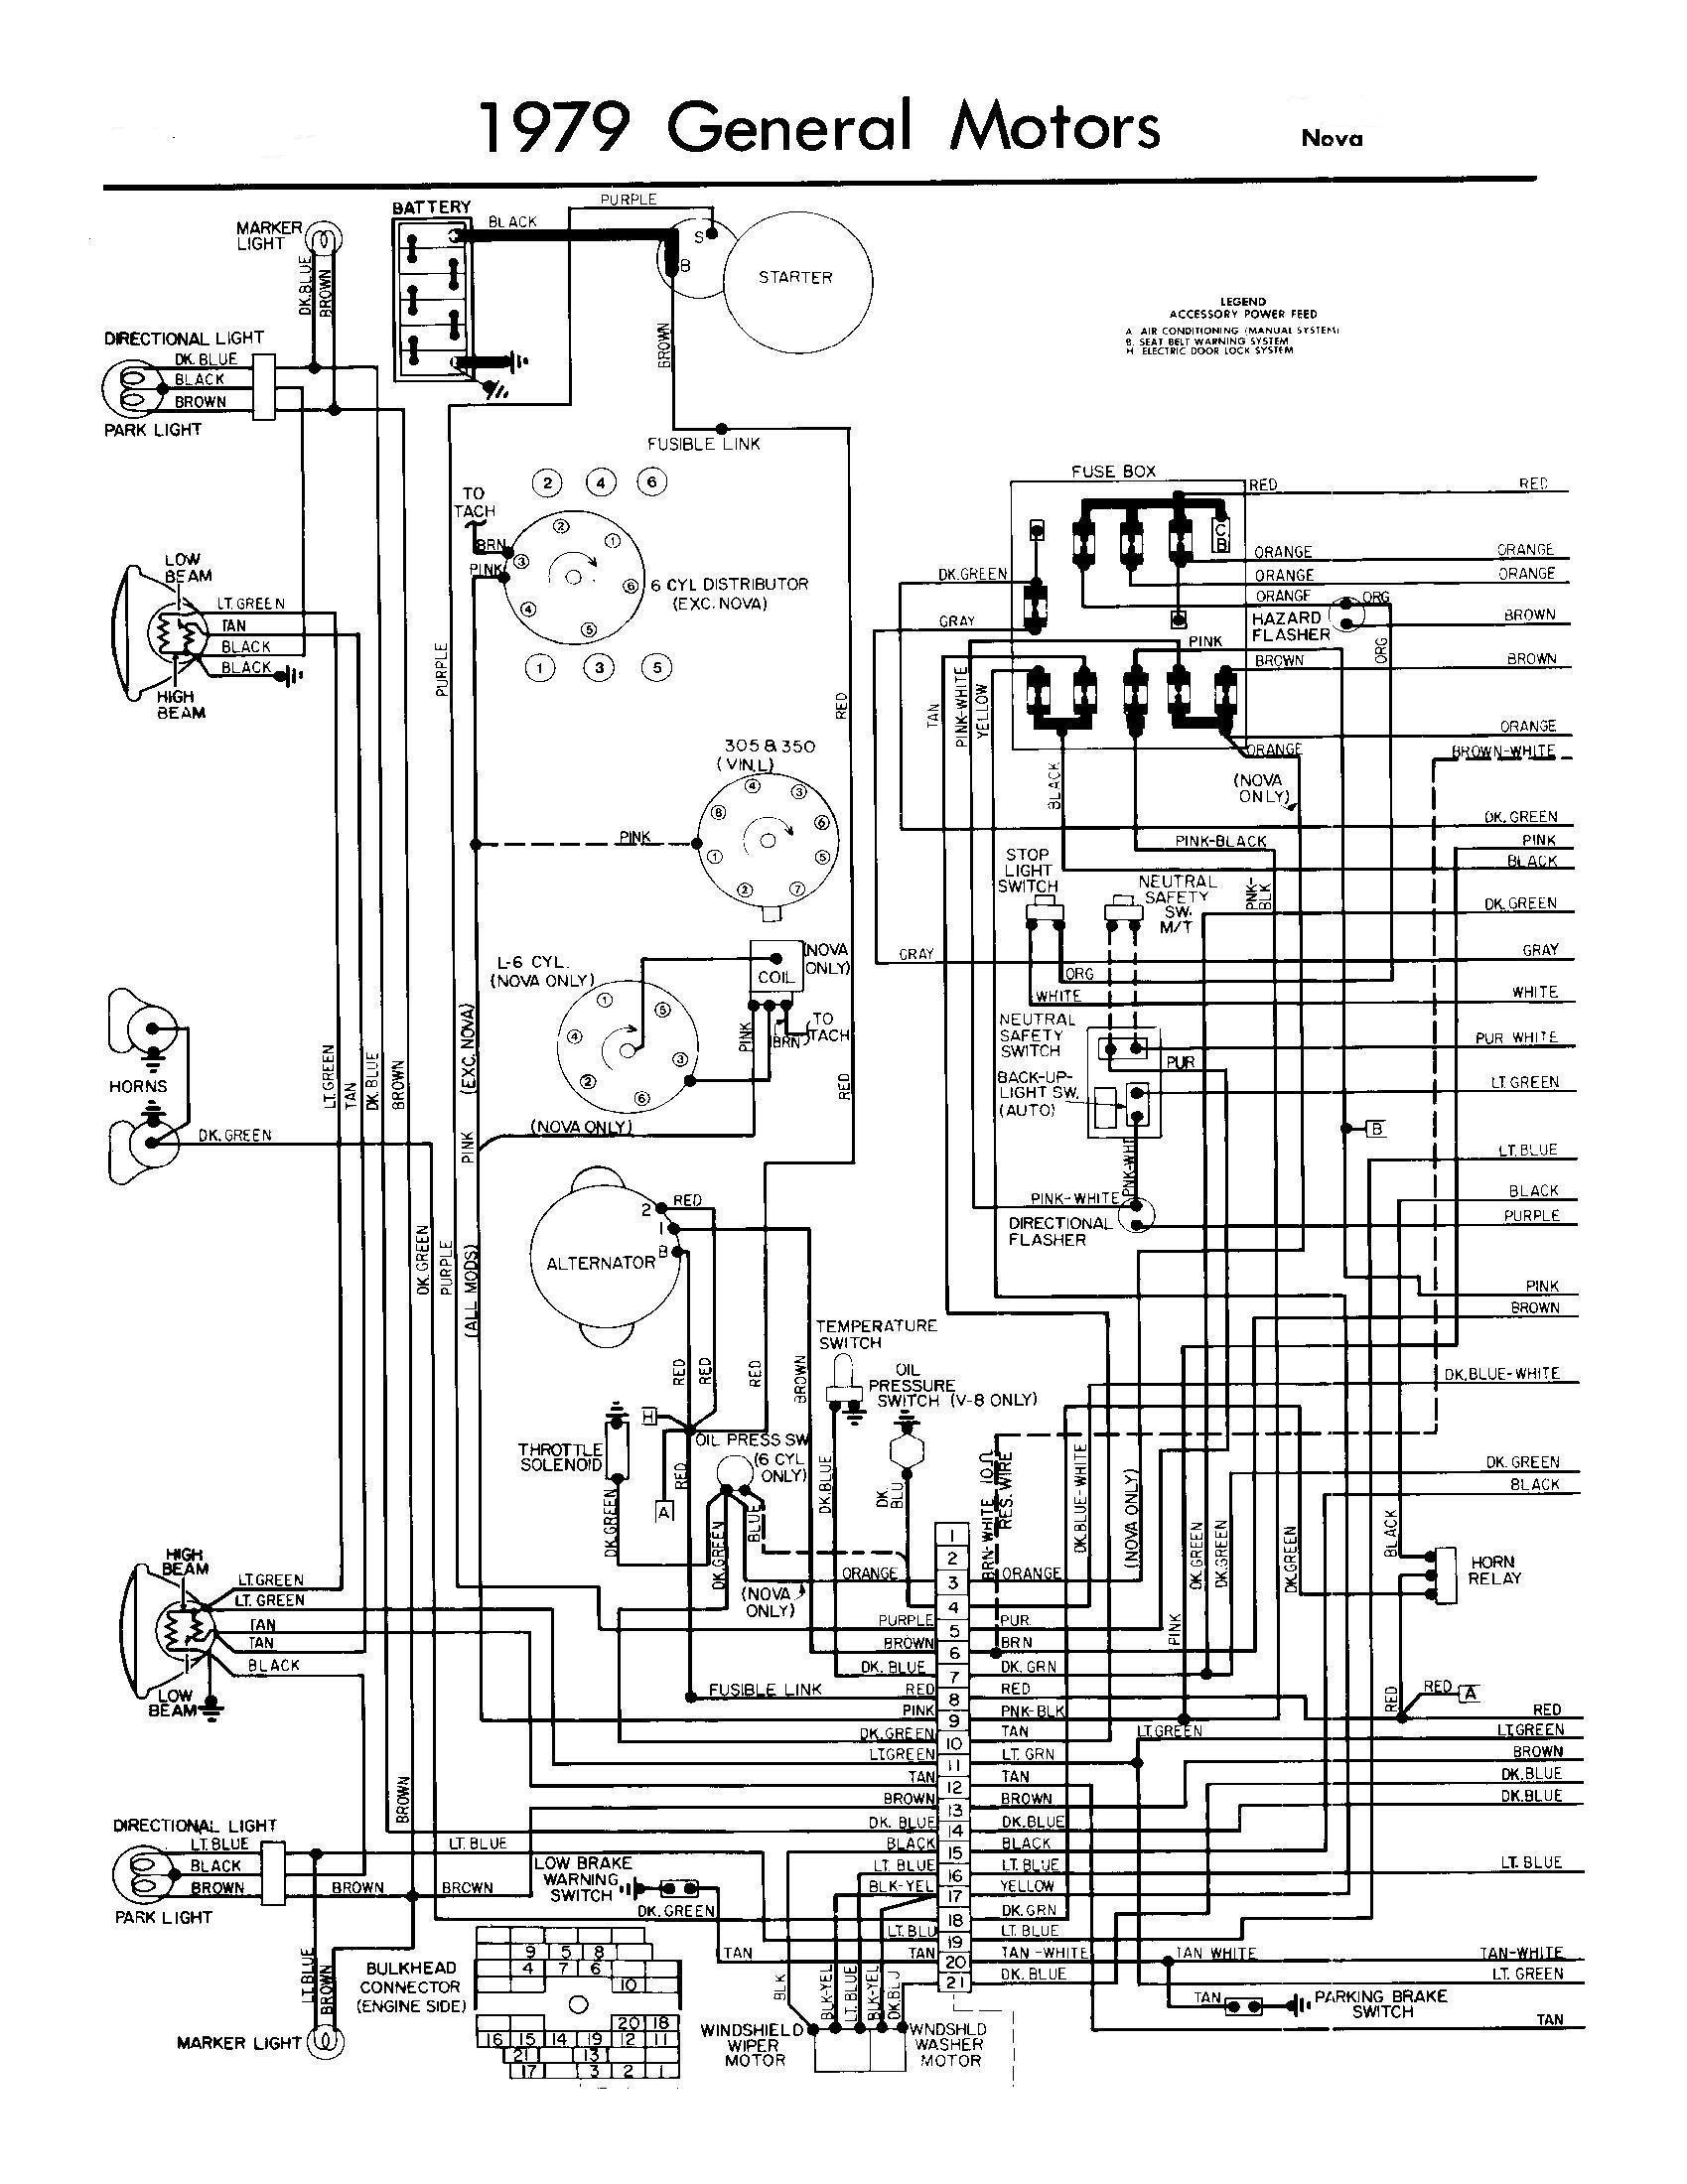 1982 chevy alt.wiring diagram